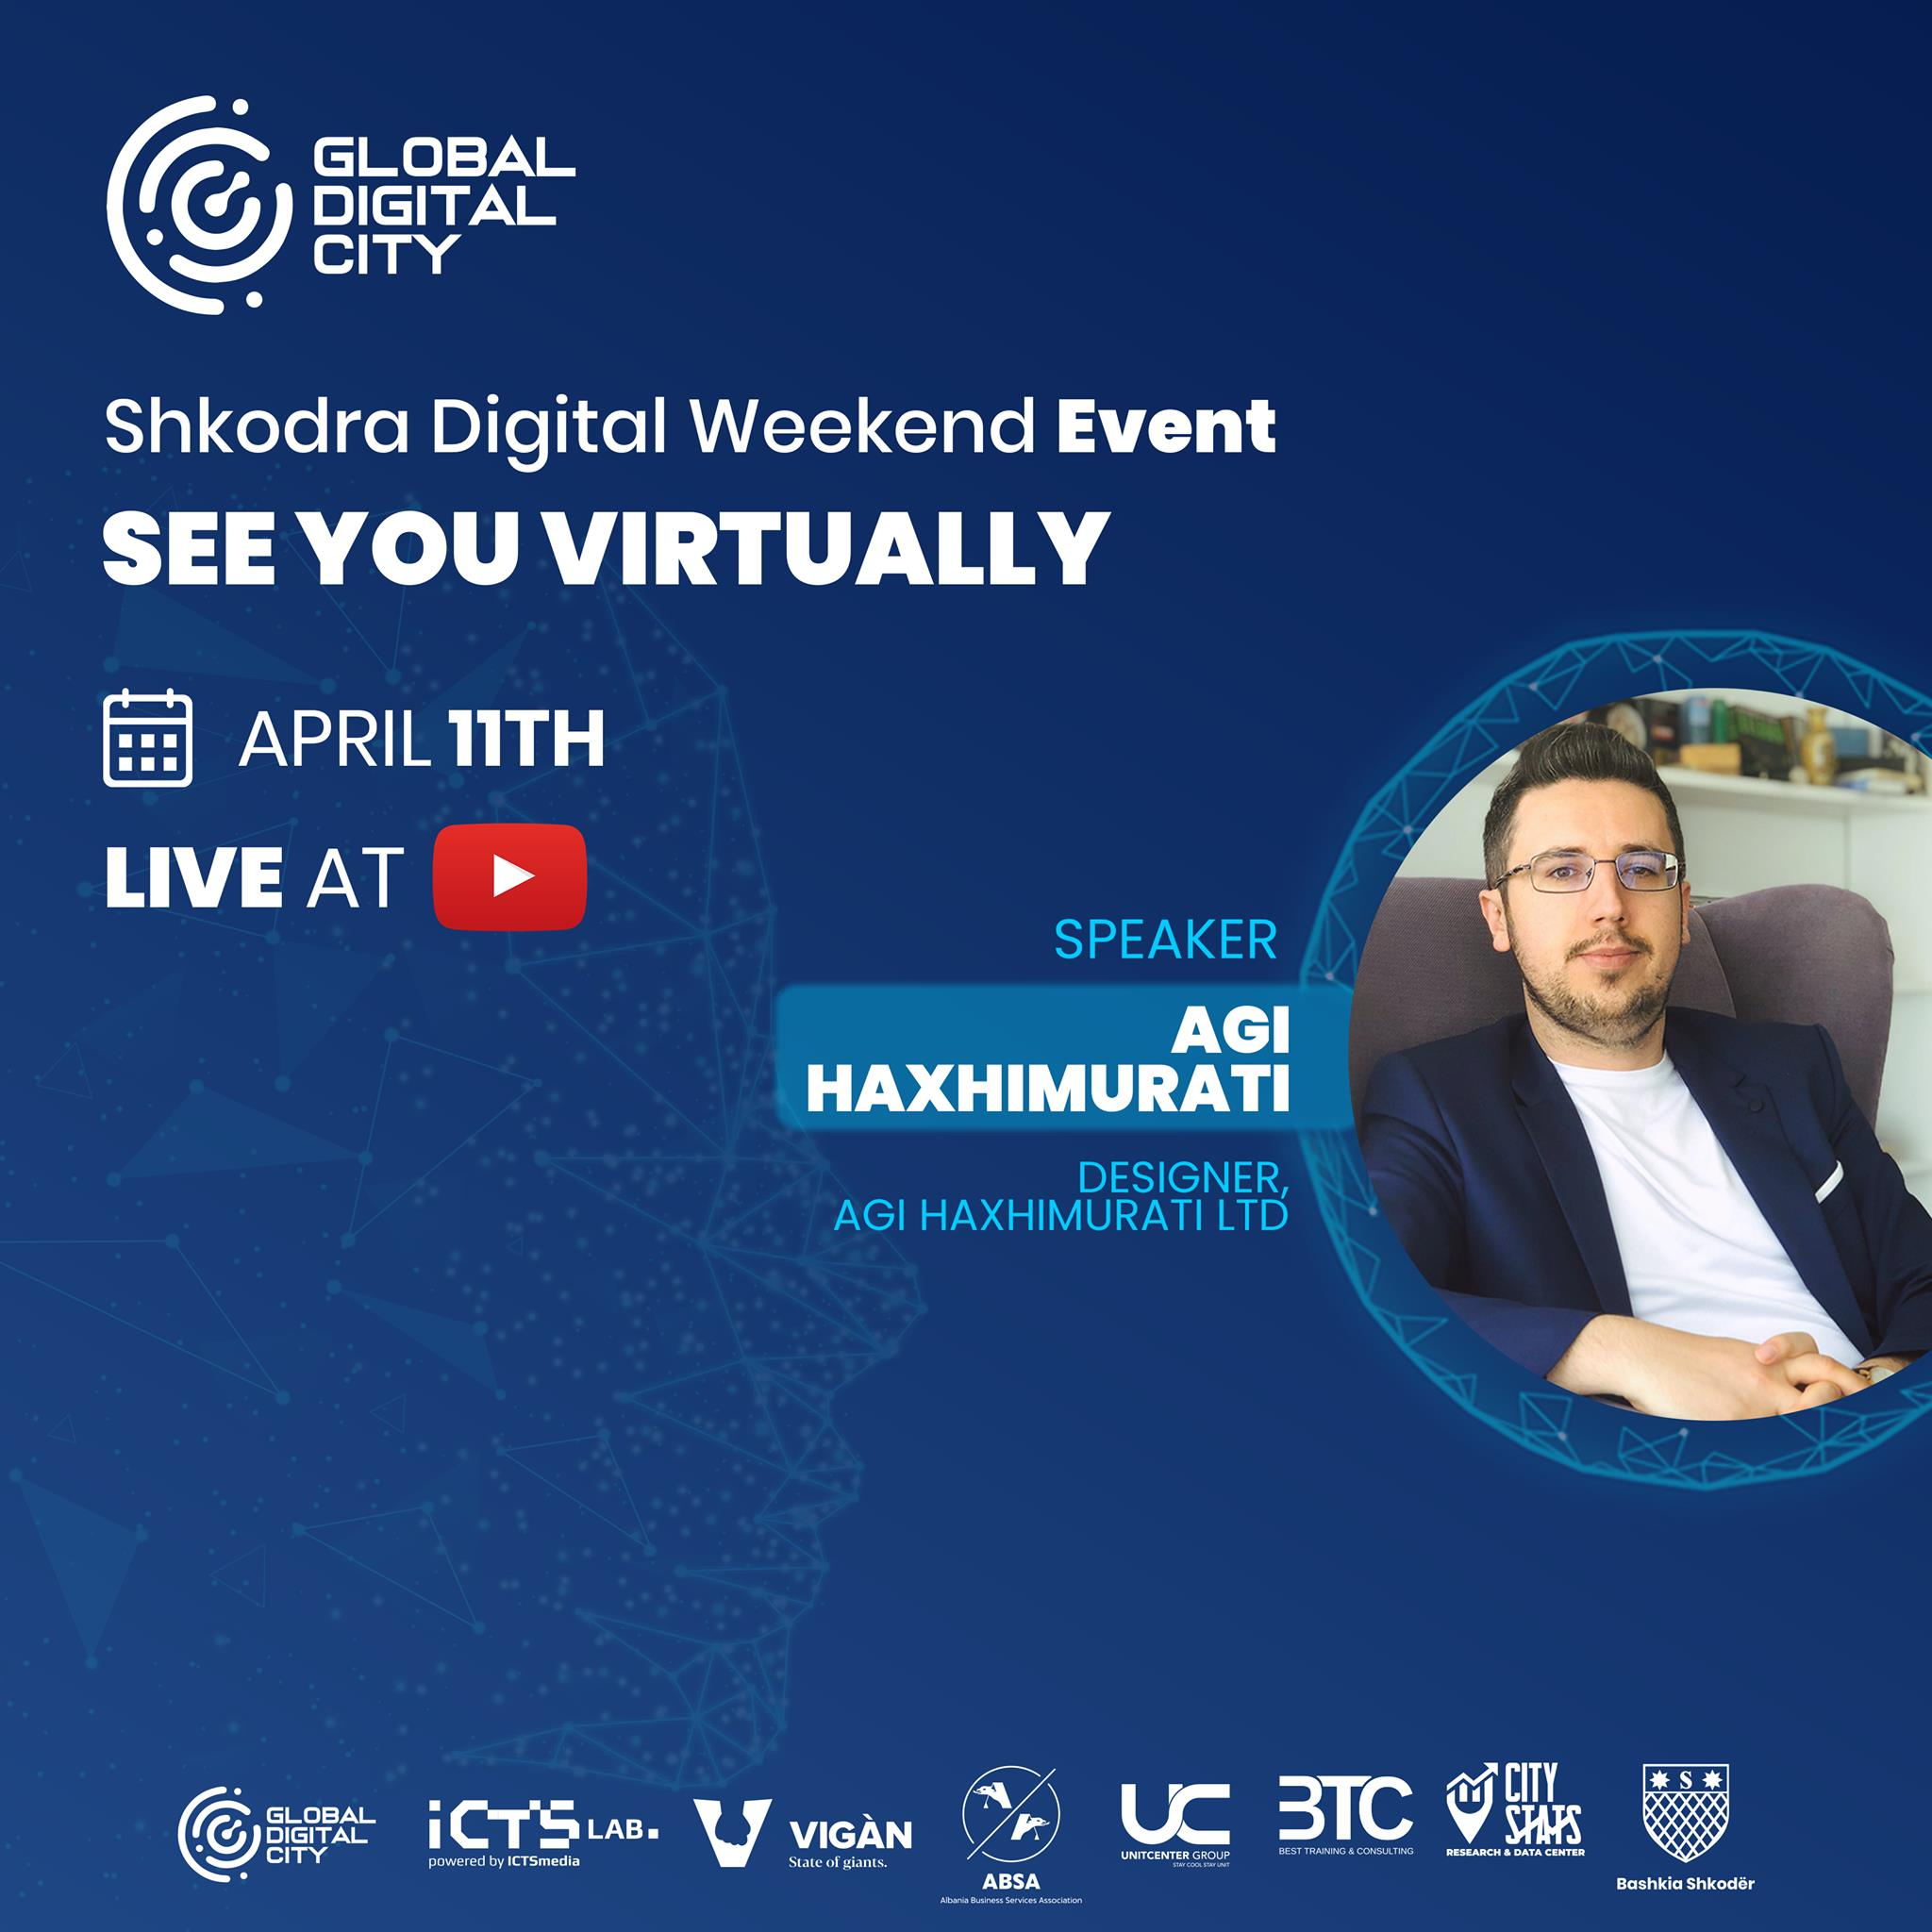 Agi Haxhimurati Global Digital City Albania